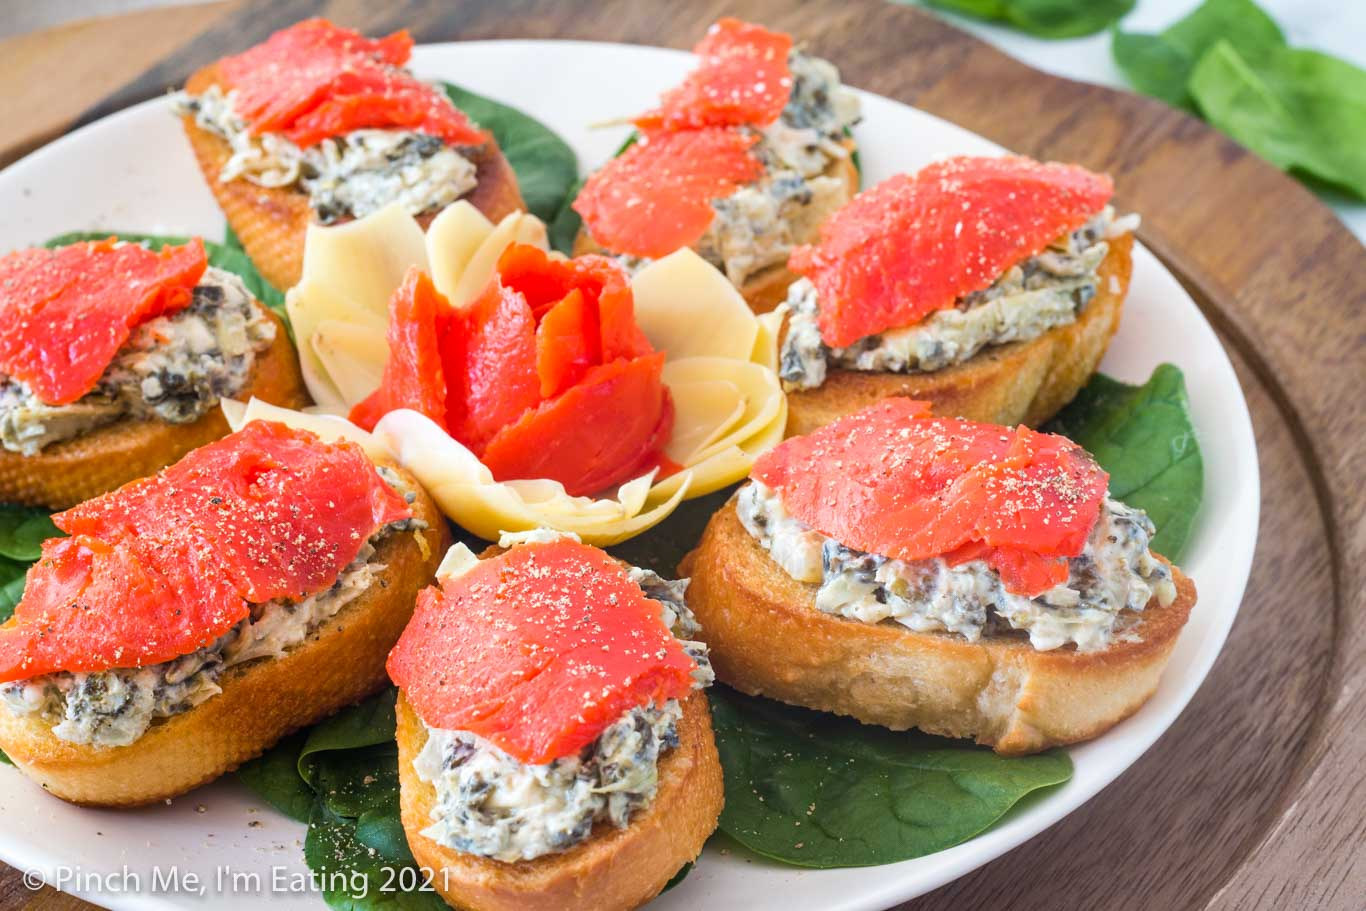 Artichoke spinach dip crostini with smoked salmon arranged in on a white plate around a flower made of artichoke heart and smoked salmon